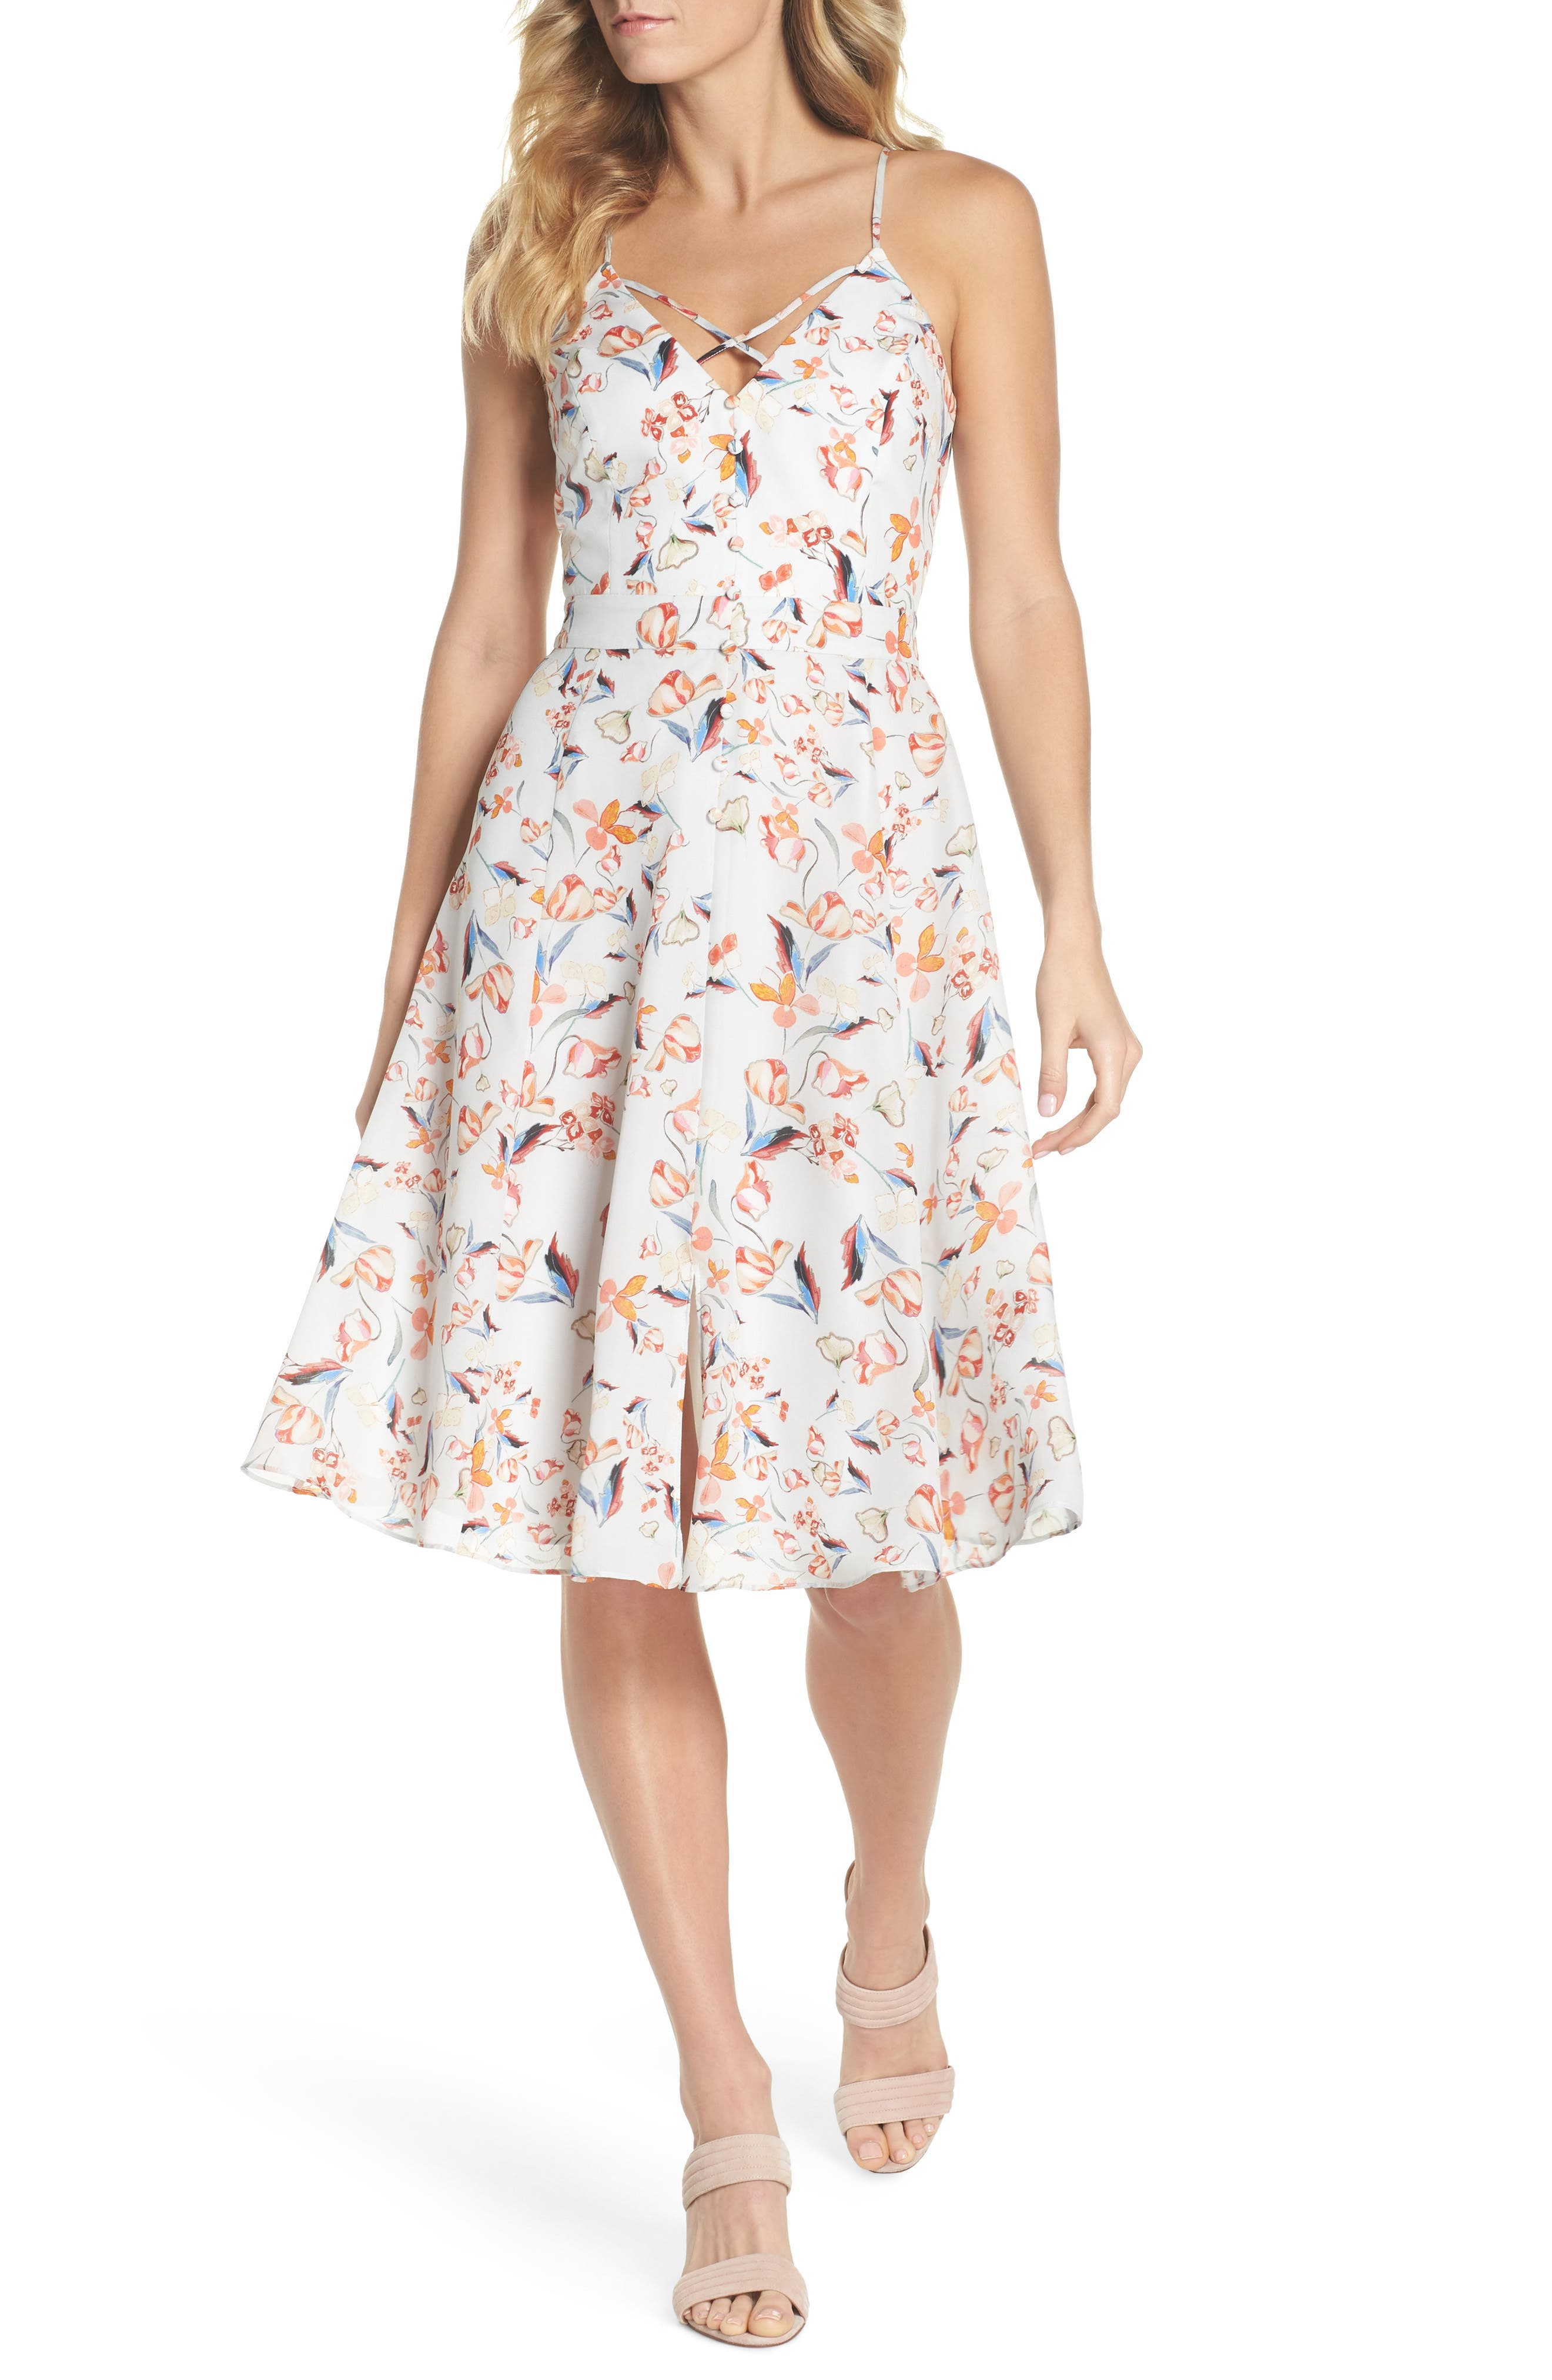 Tiffany Floral Fit & Flare Dress,                             Main thumbnail 1, color,                             Crystal Blue Multi